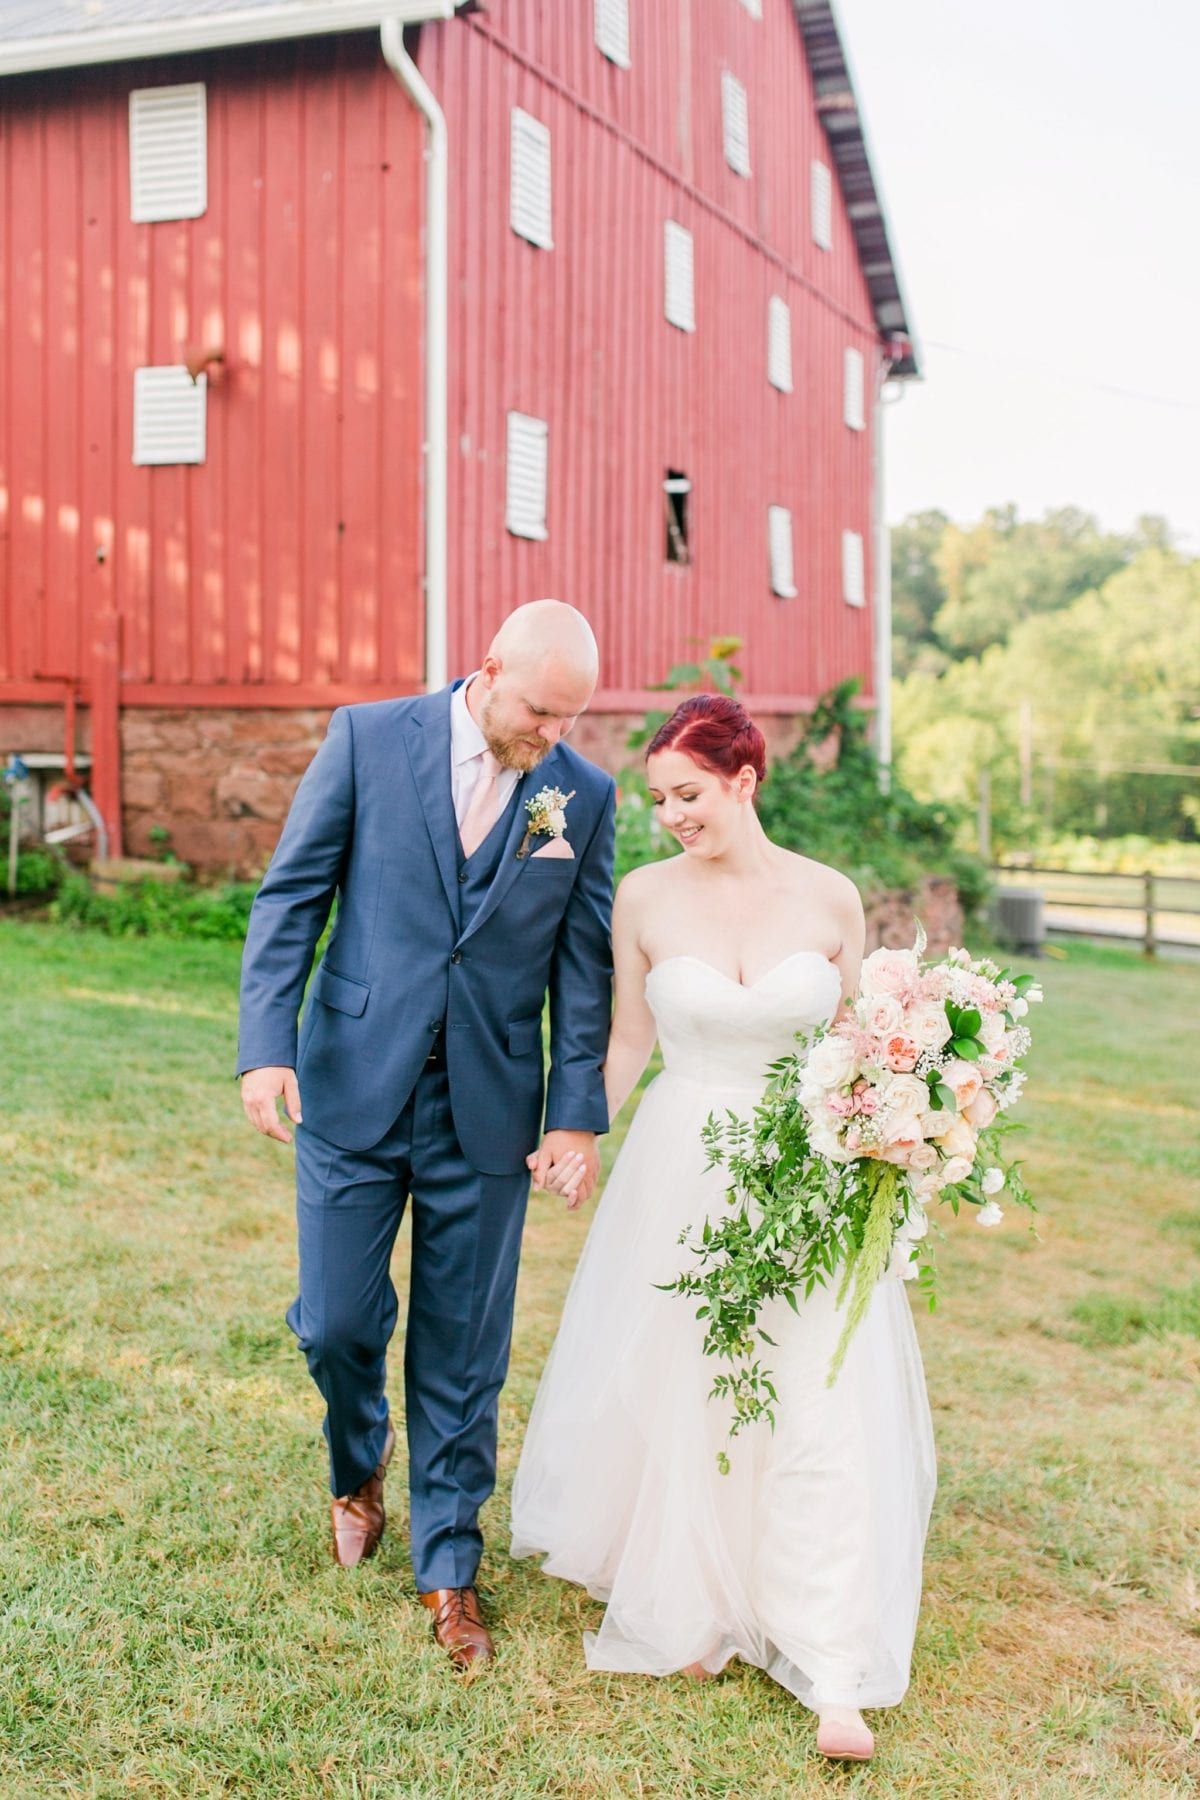 Rocklands Farm Wedding Virginia Wedding Photographer Megan Kelsey Photography Jessica & Jason-54.jpg